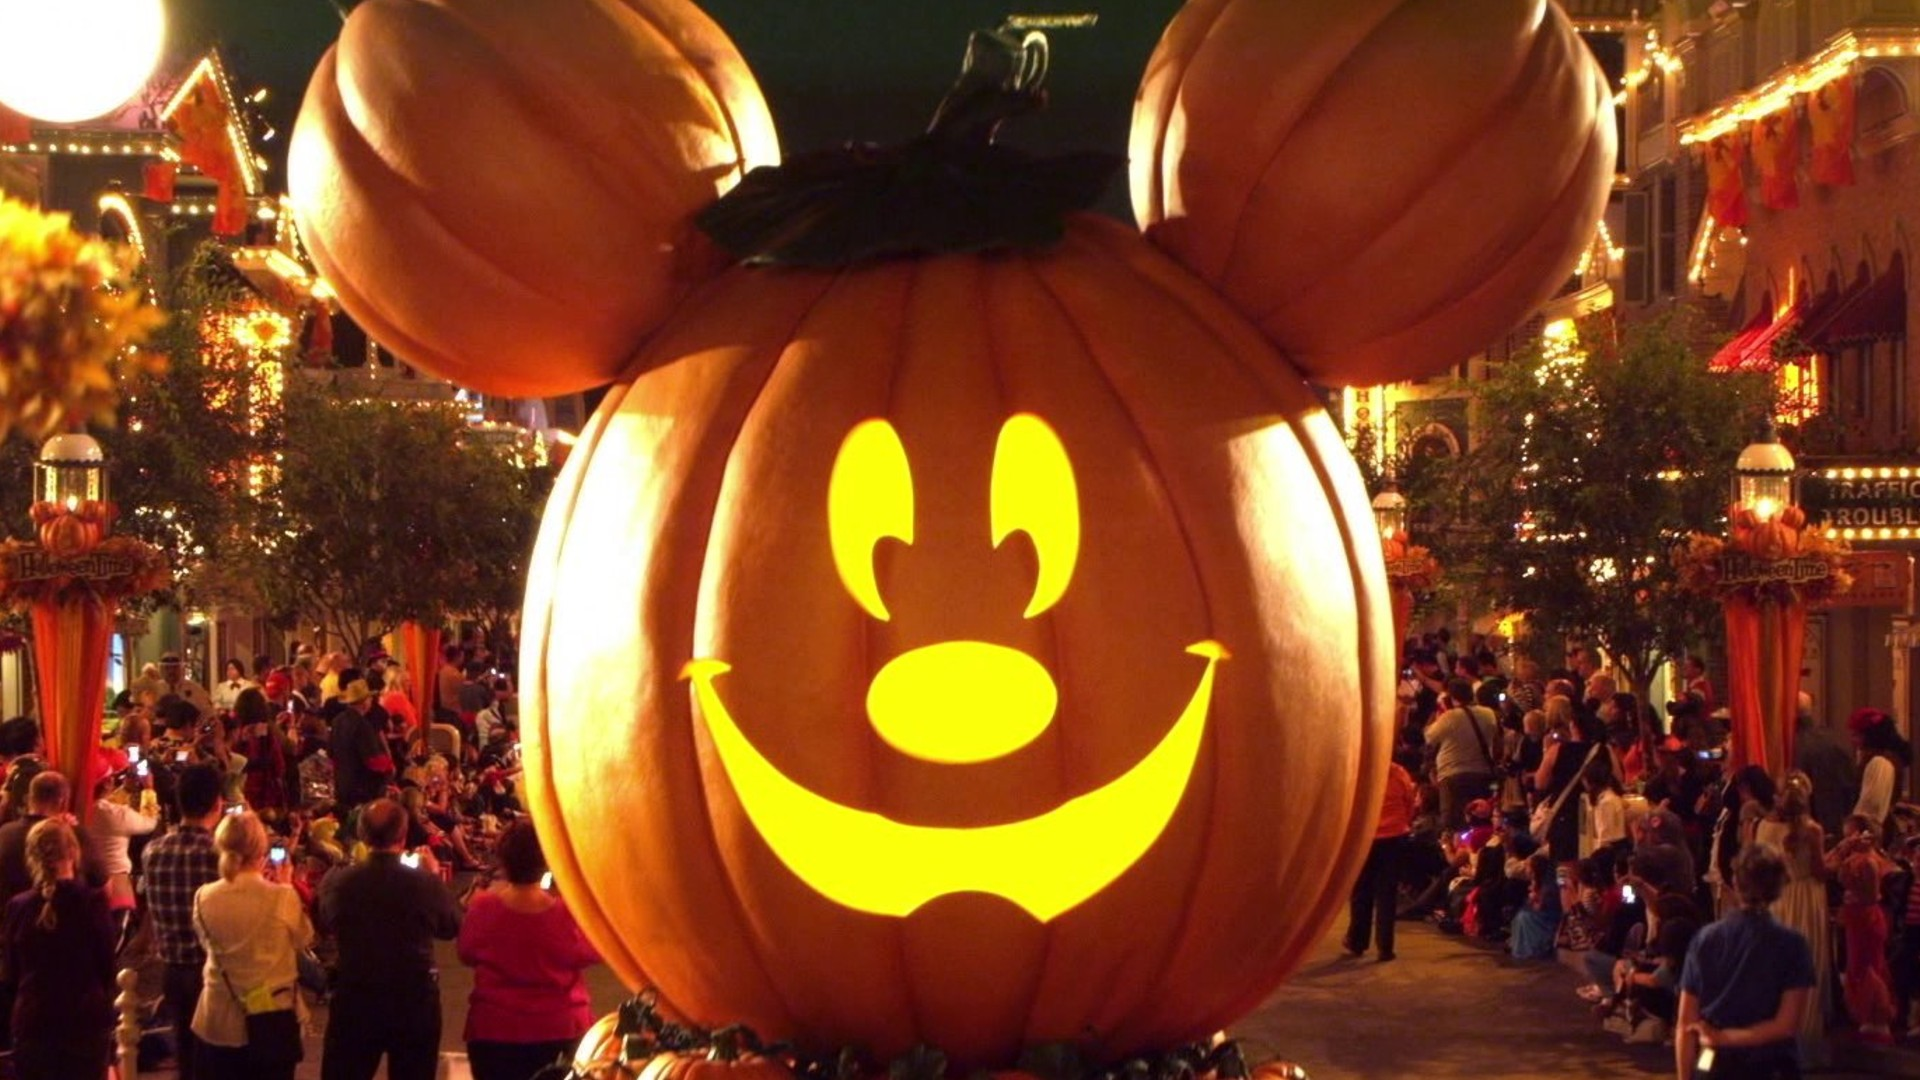 A Mickey Mouse-shaped pumpkin is seen during Halloween Time at Disneyland. (Disneyland Resort)